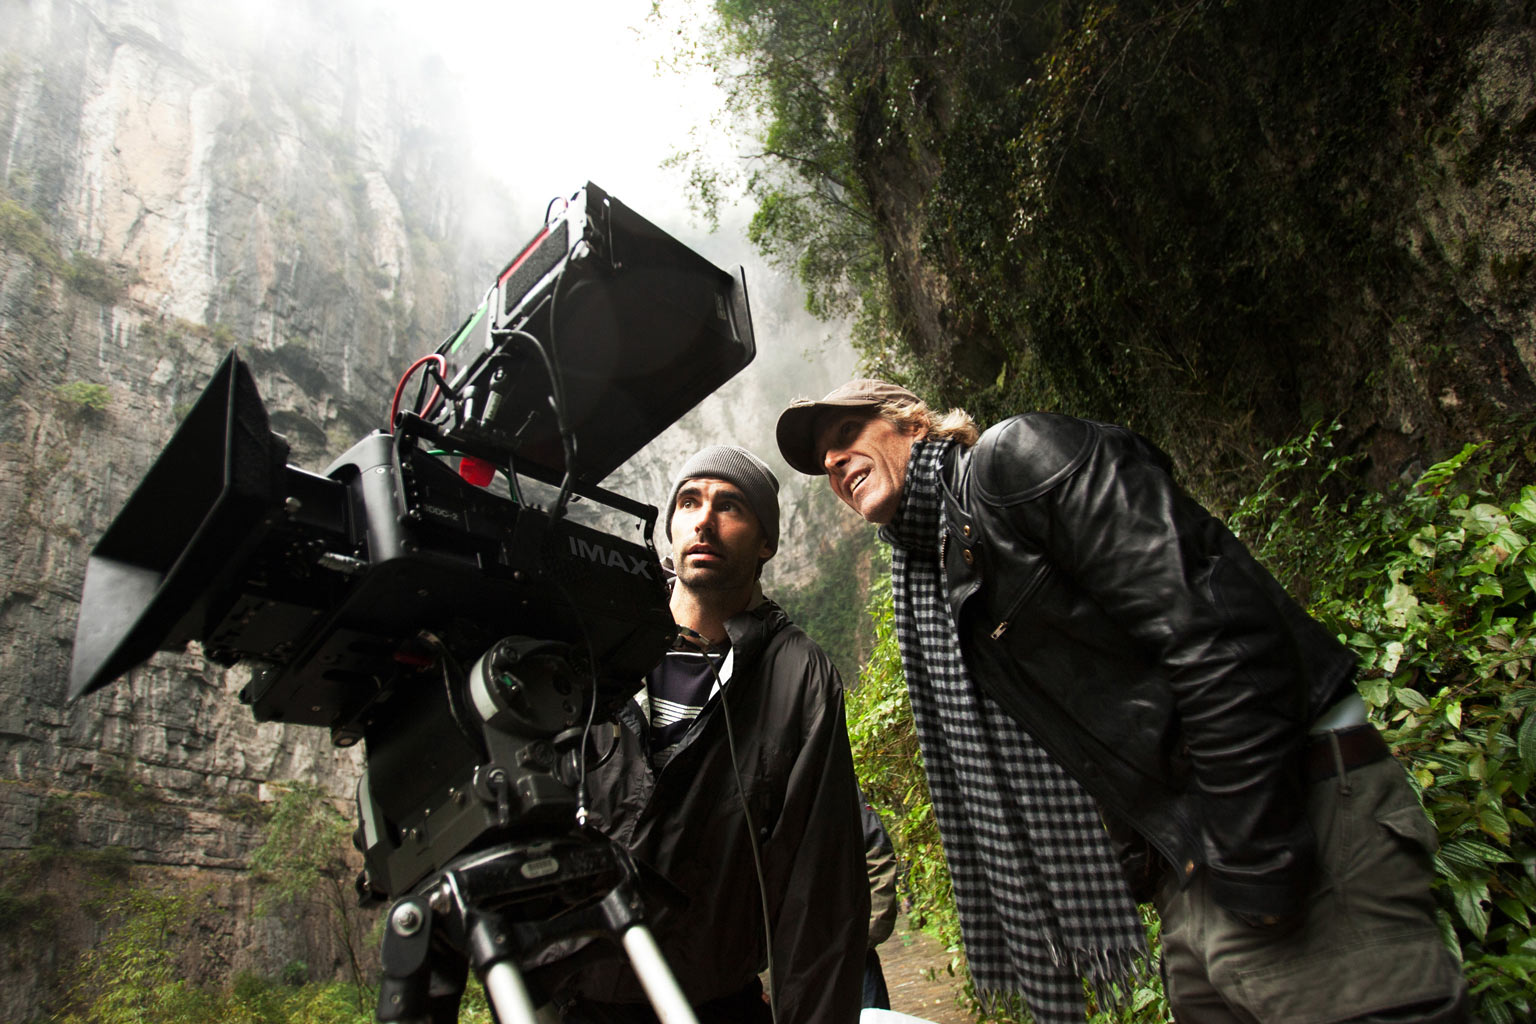 Michael Bay shooting with the IMAX 3D camera on 'Transformers: Age of Extinction' (image copyright of Paramount Pictures)